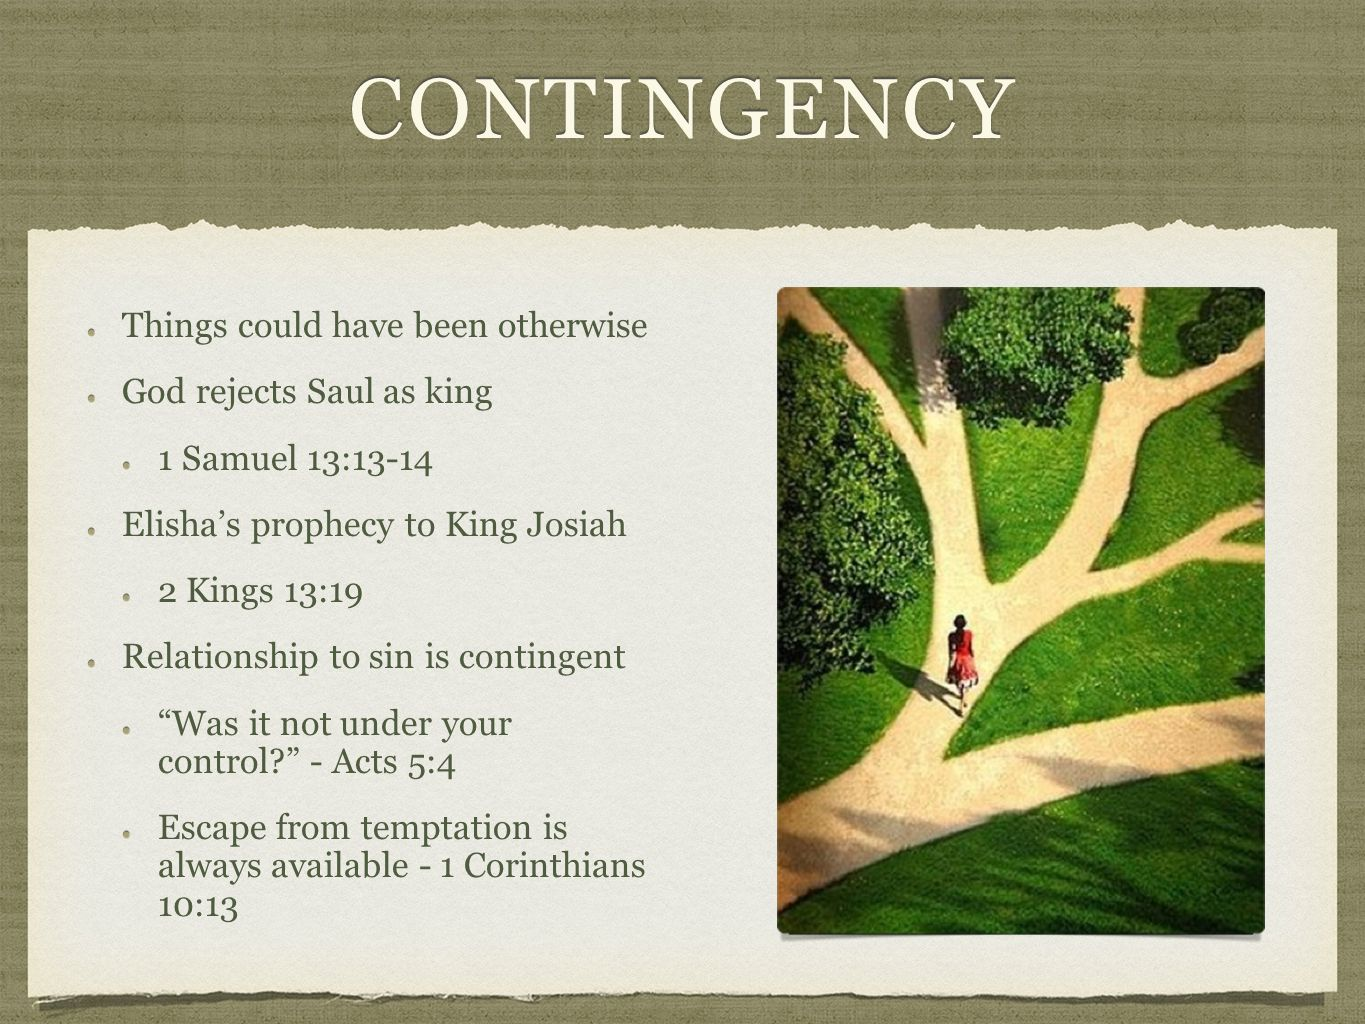 CONTINGENCY Things could have been otherwiseThings could have been otherwise God rejects Saul as kingGod rejects Saul as king 1 Samuel 13:13-141 Samue